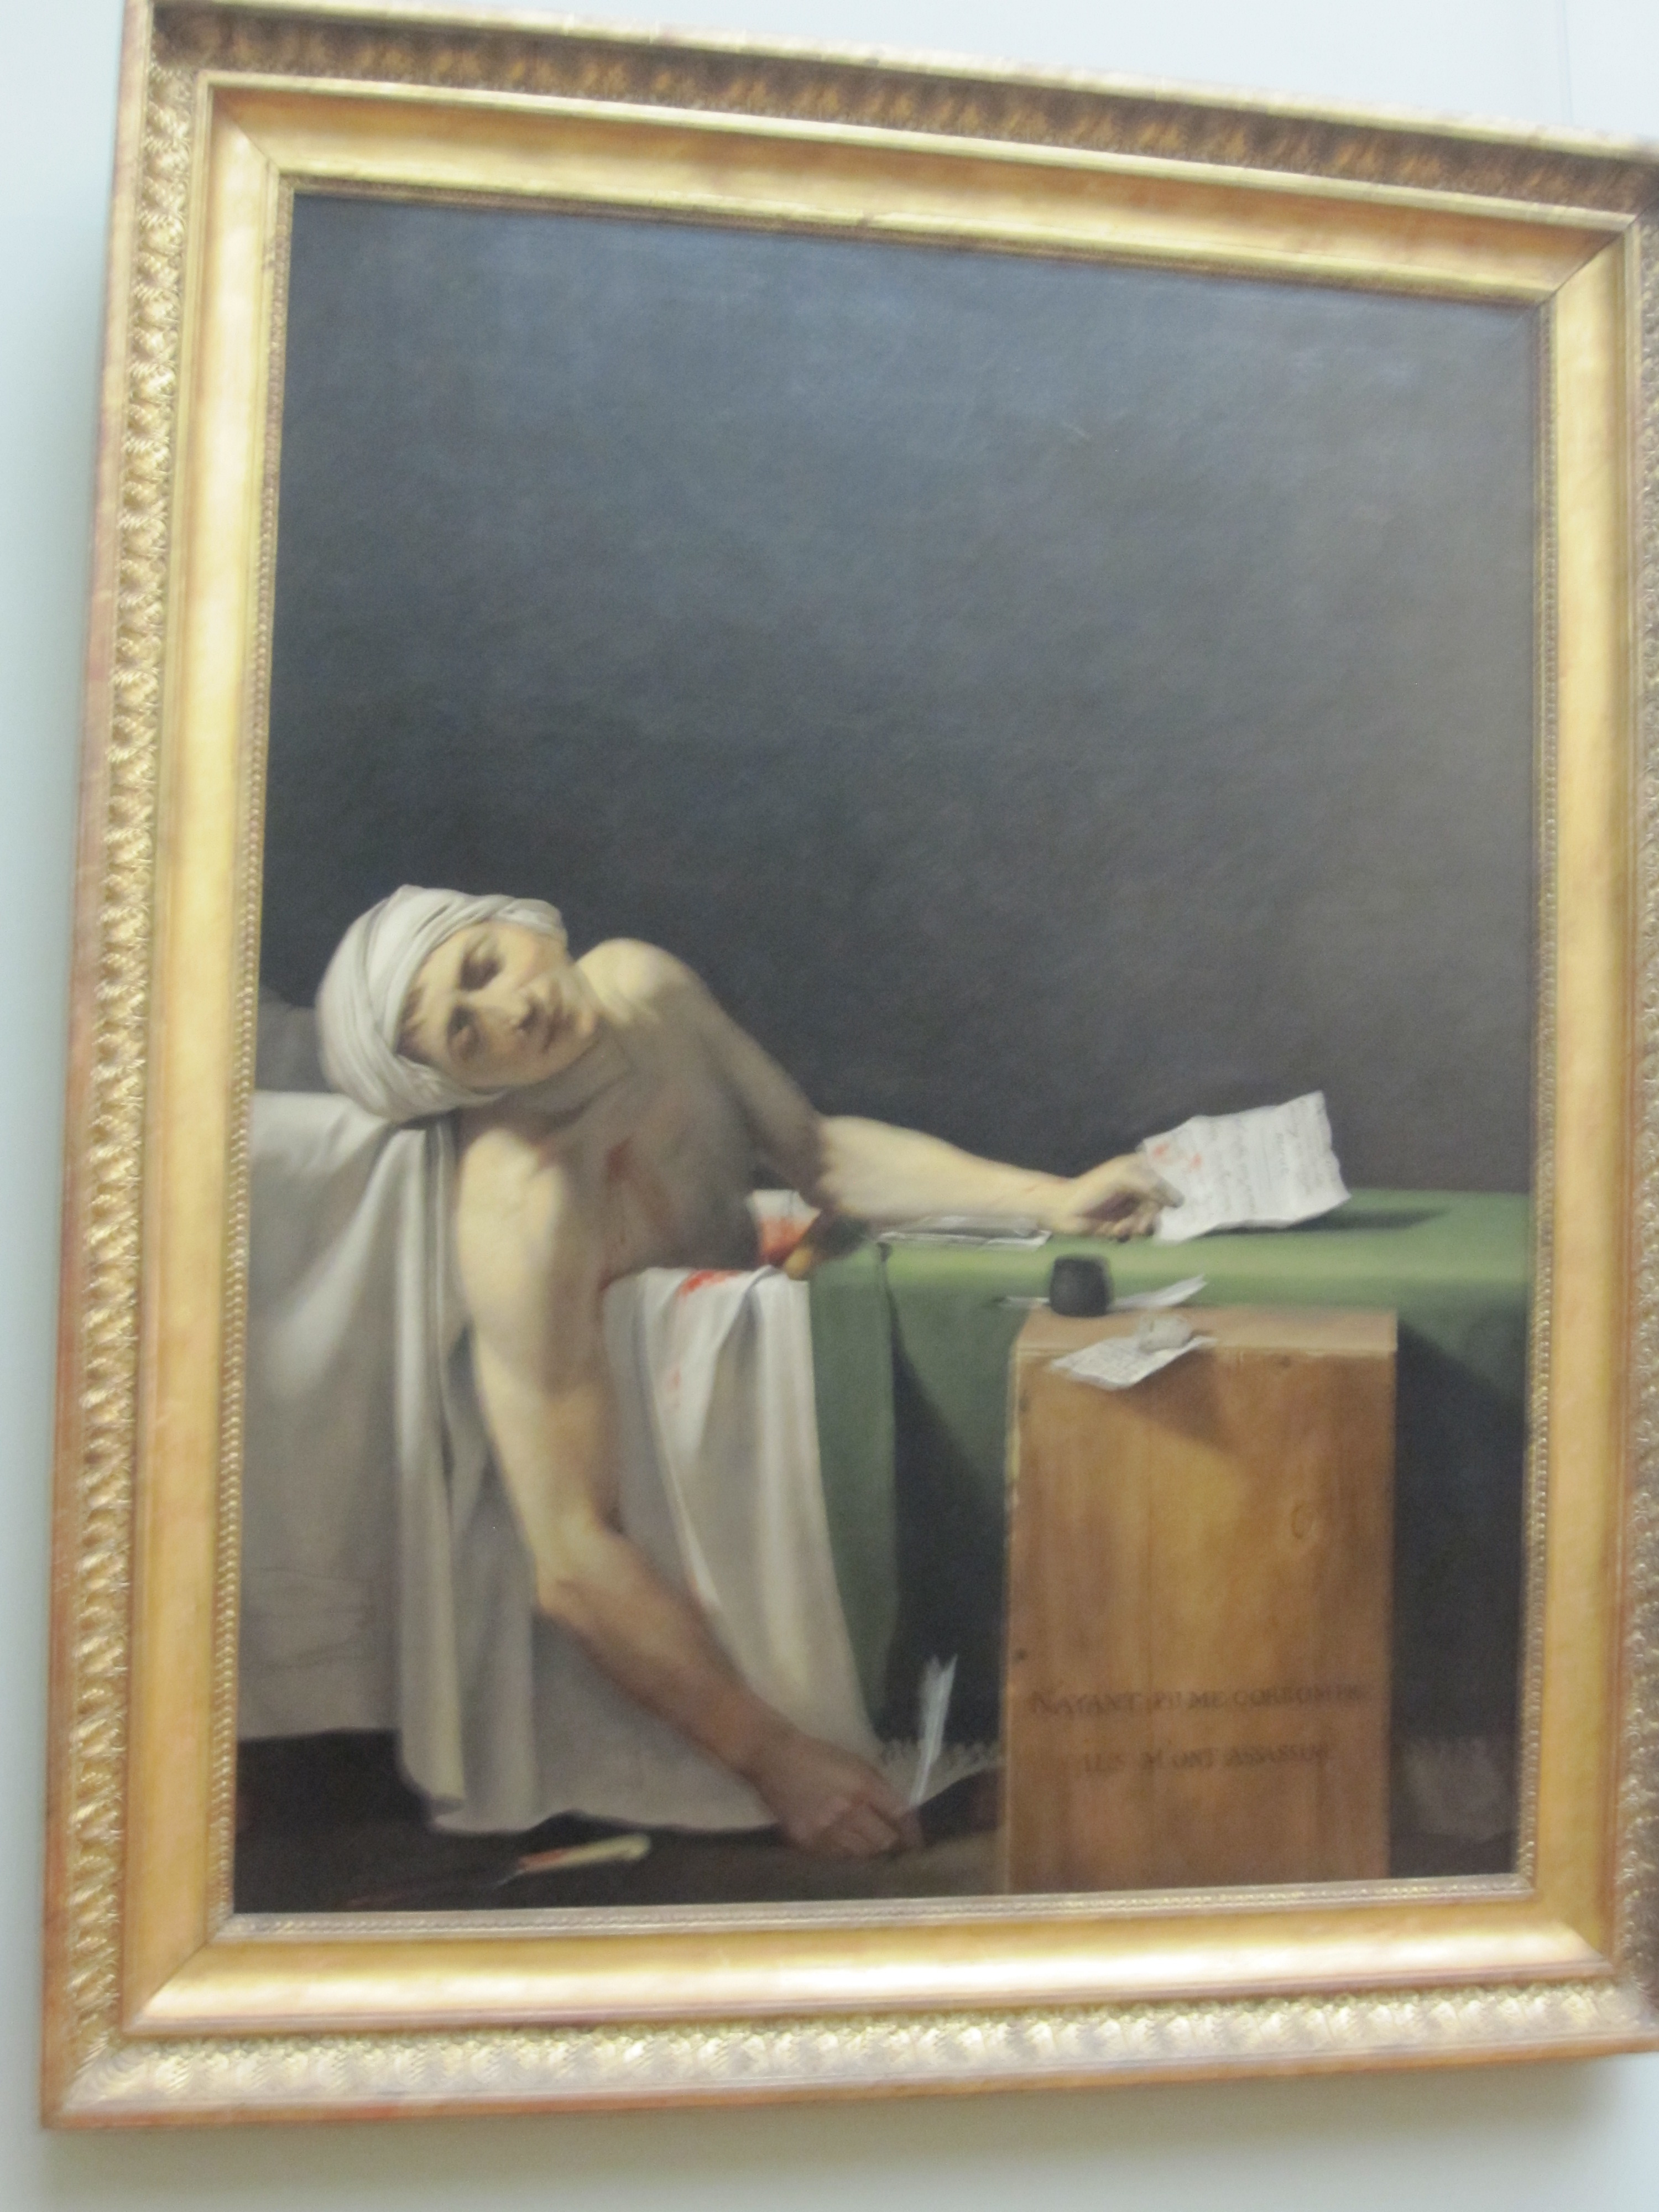 death of marat essay 1 david,jacques louis,1748–1825 death of marat 2 marat  jean paul, 1743– 1793  as a writer, with a number of essays that were expanded into a book.